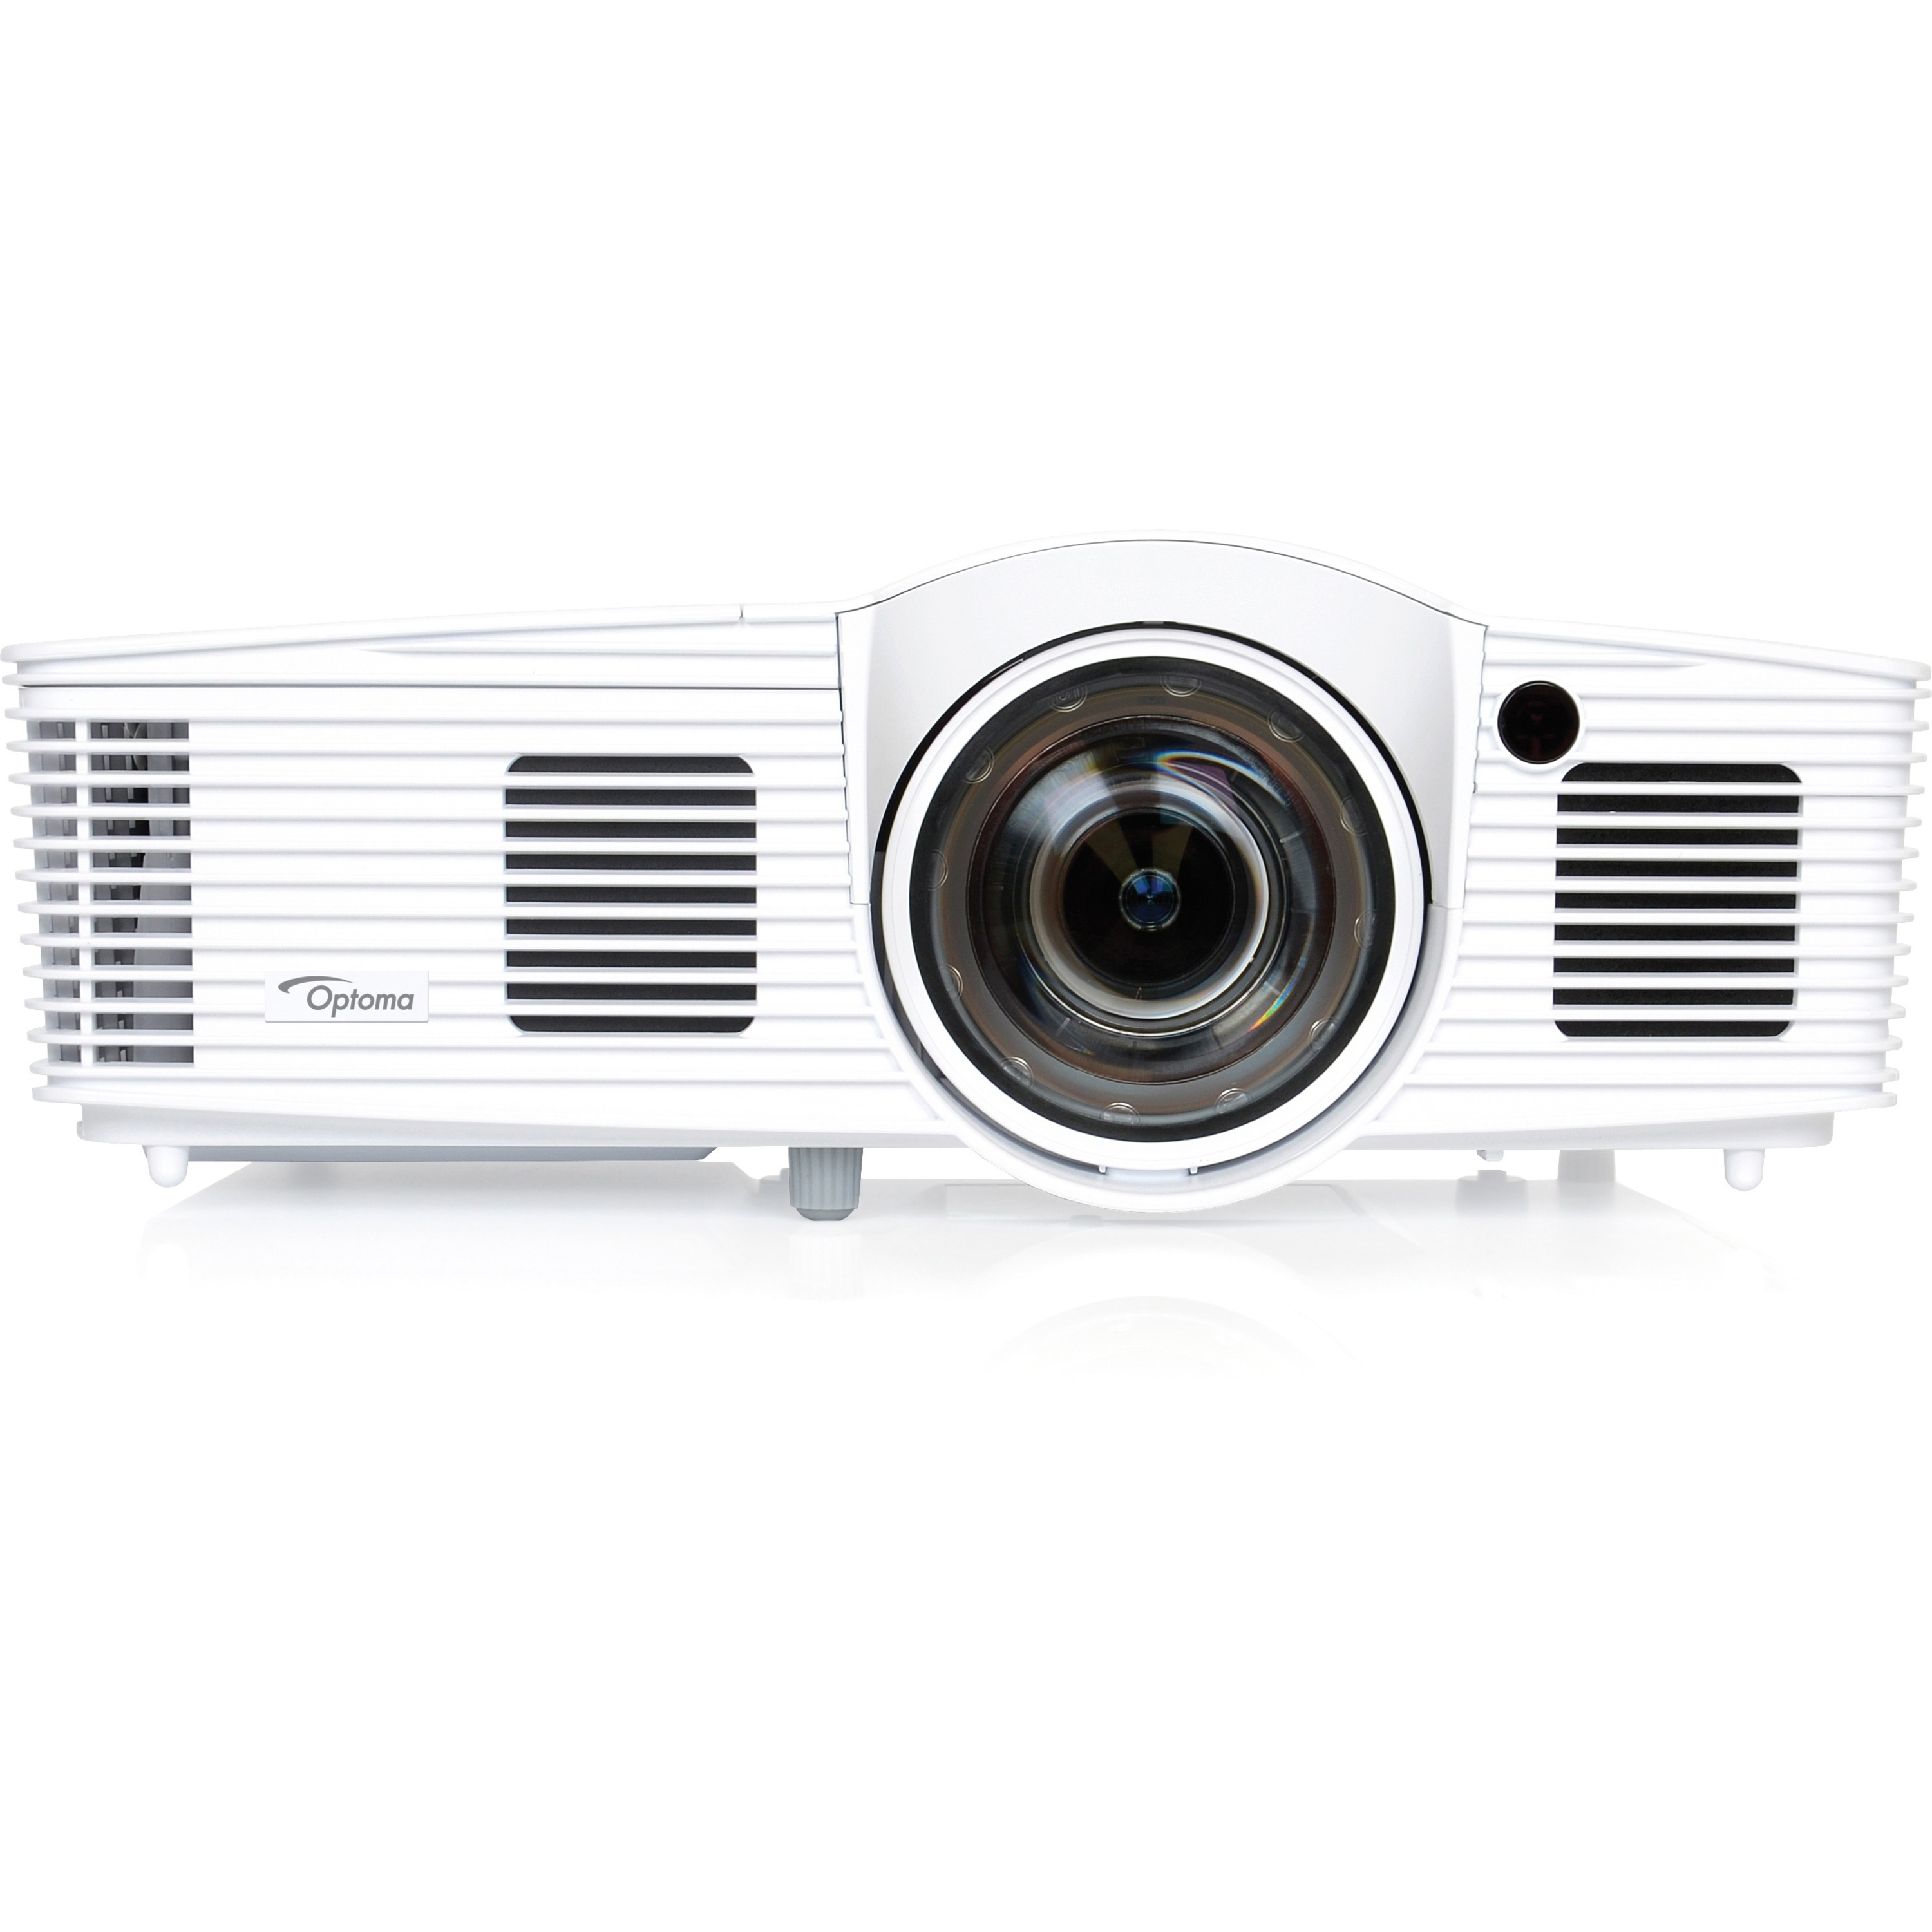 Optoma EH200ST Full 3D 1080p 3000 Lumen DLP Short Throw Projector with 20,000:1 Contrast Ratio and MHL Enabled_subImage_1